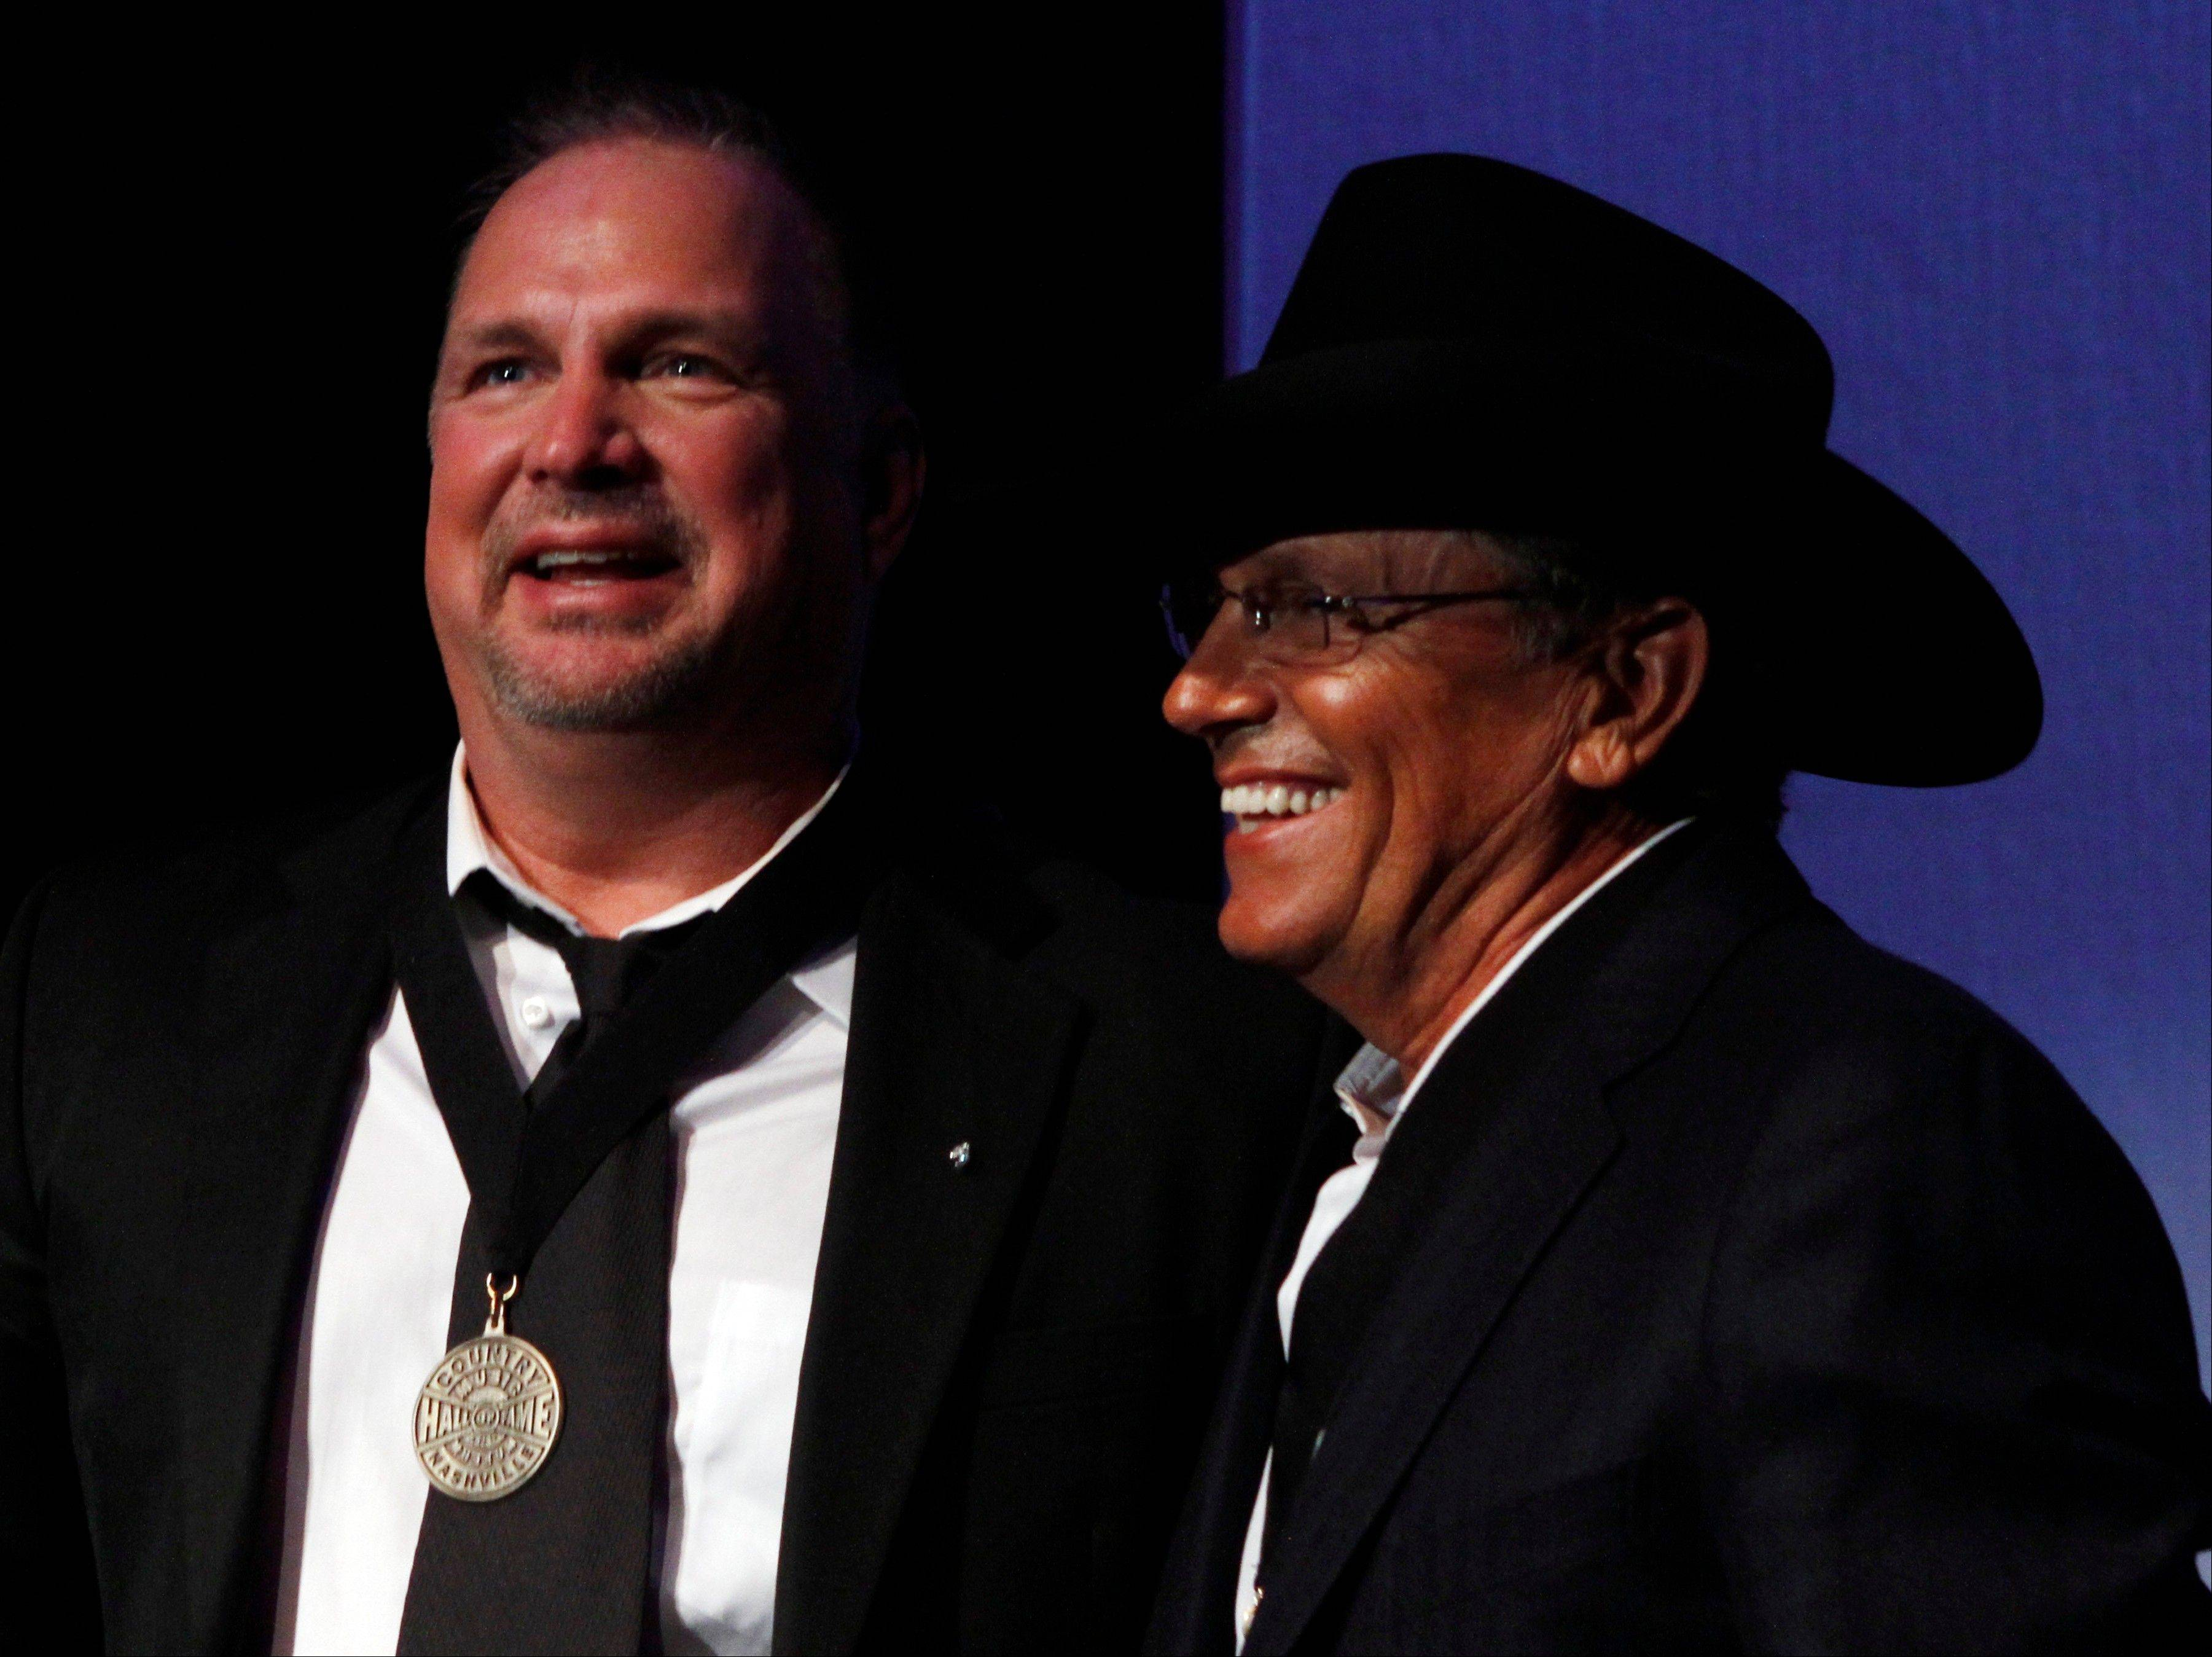 Garth Brooks, left, stands with George Strait after being inducted into the Country Music Hall of Fame on Sunday in Nashville, Tenn.